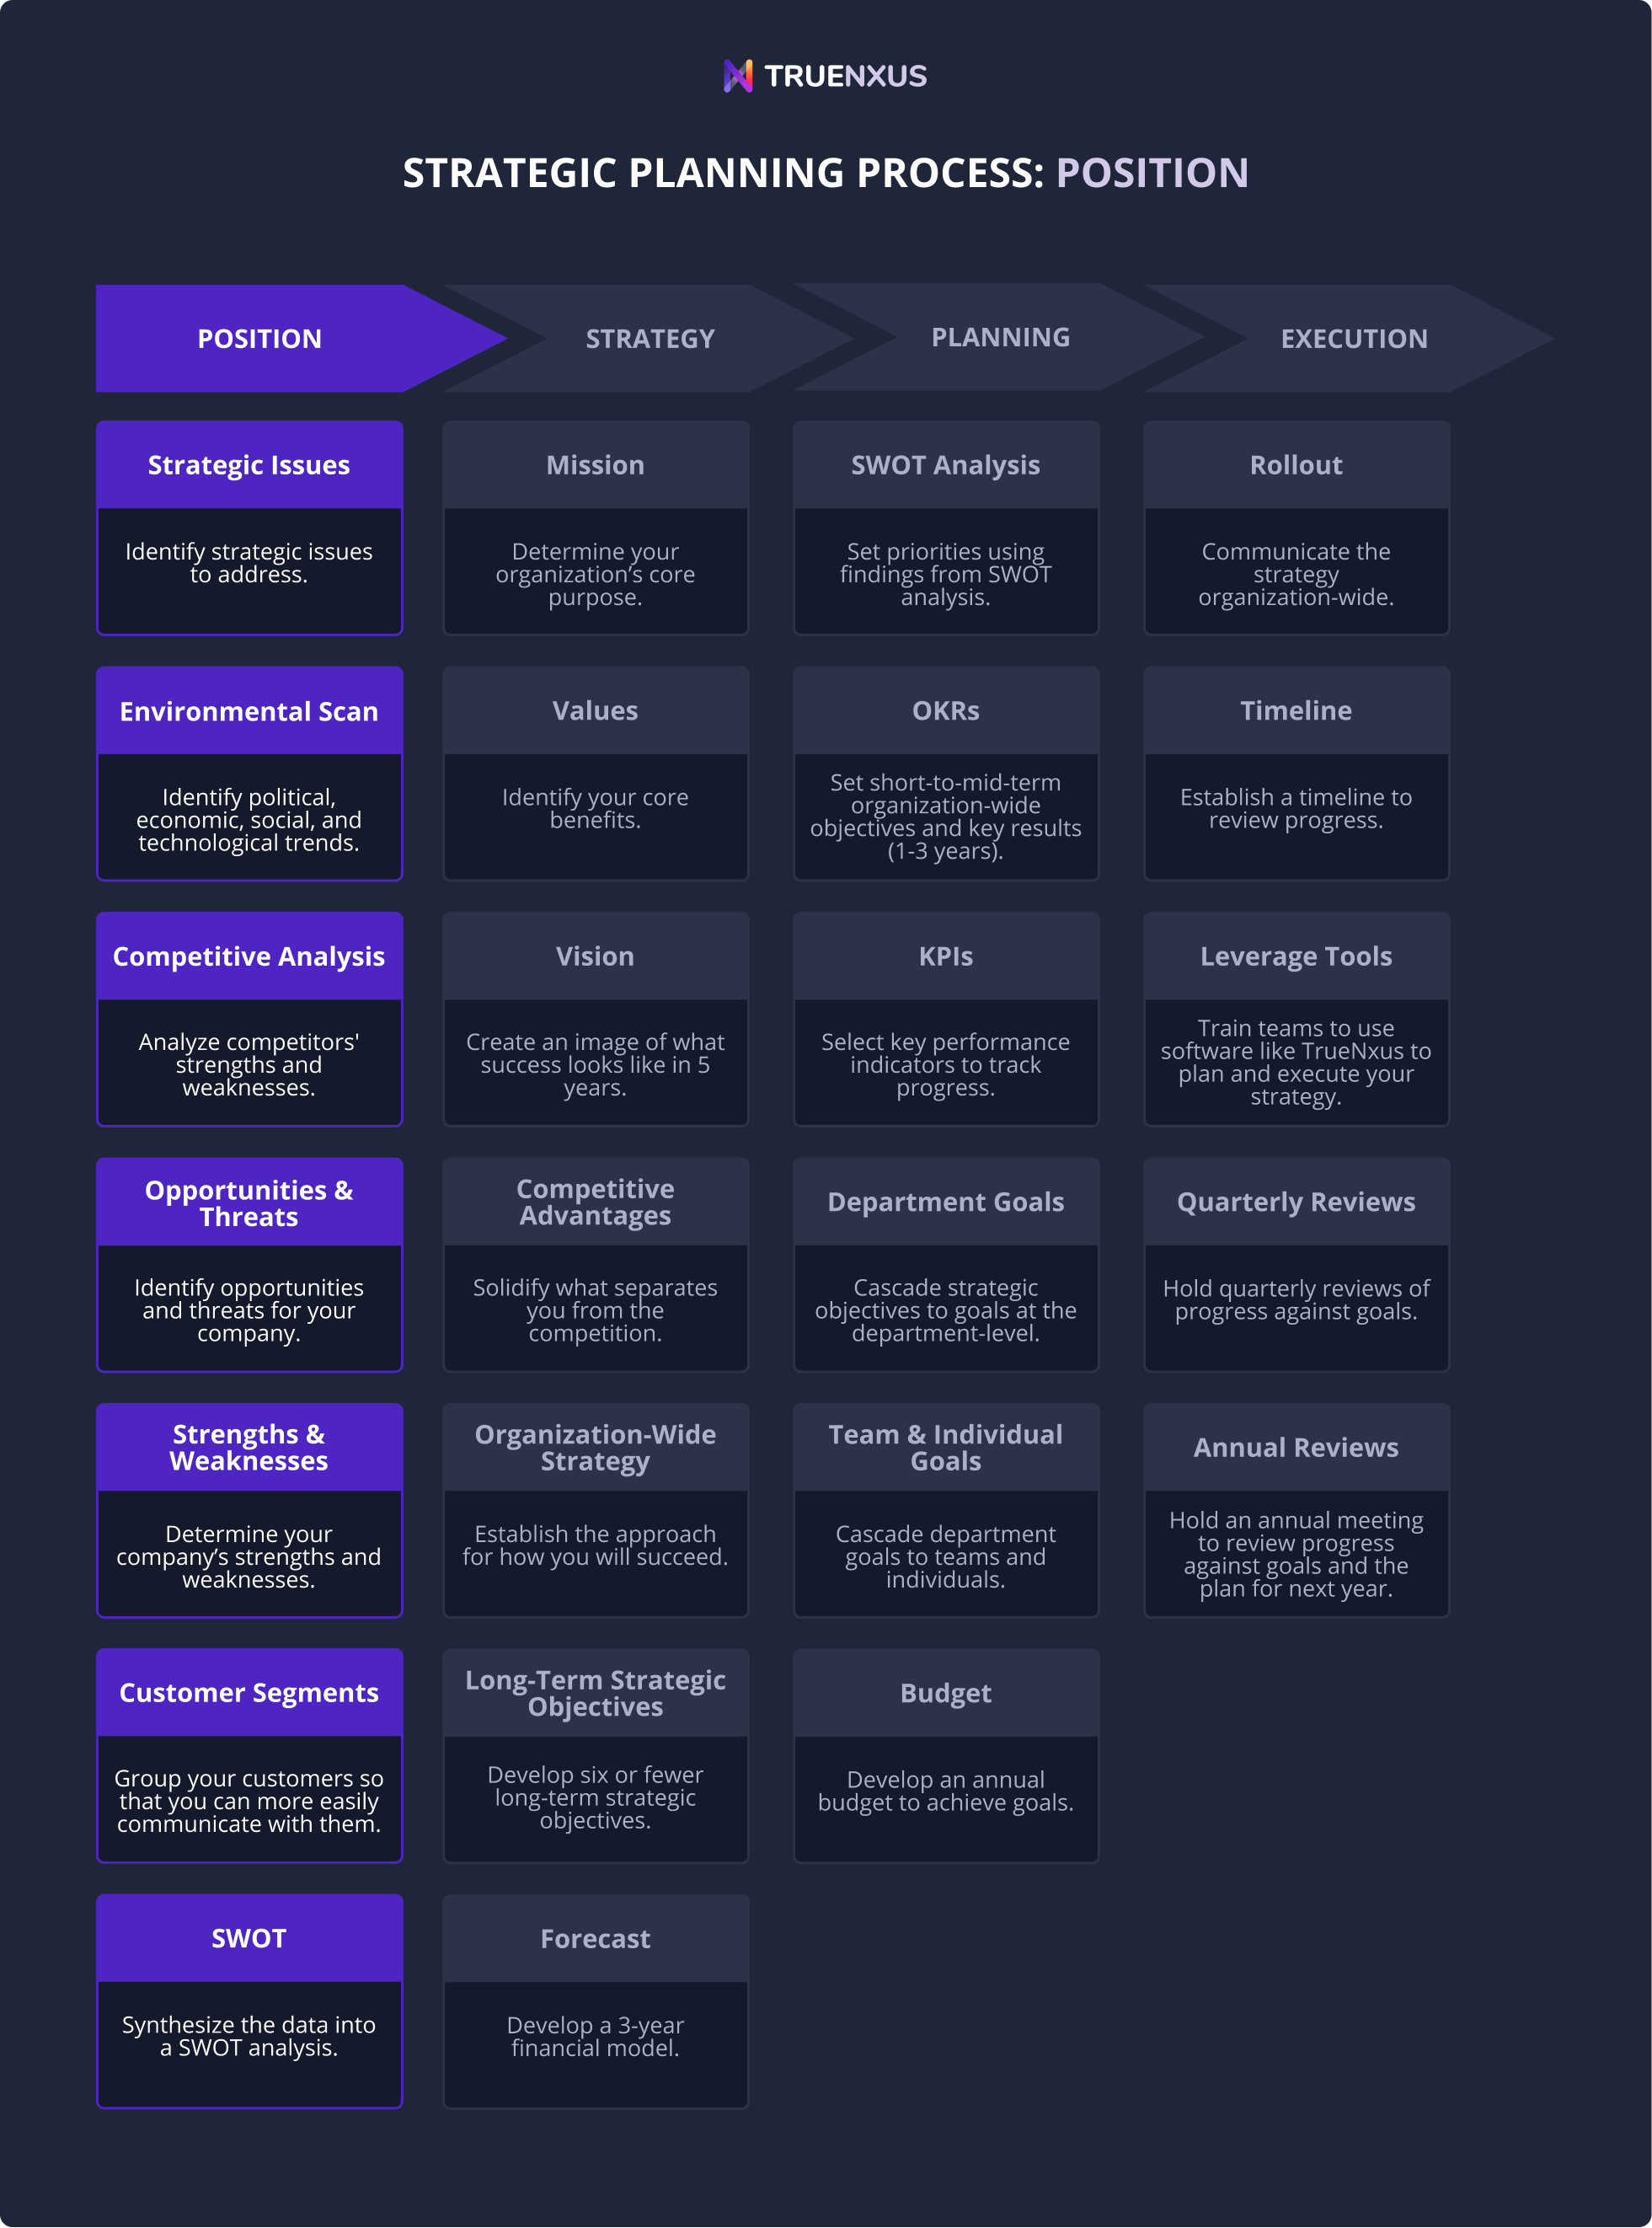 Phase 1: Determine your strategic position infographic